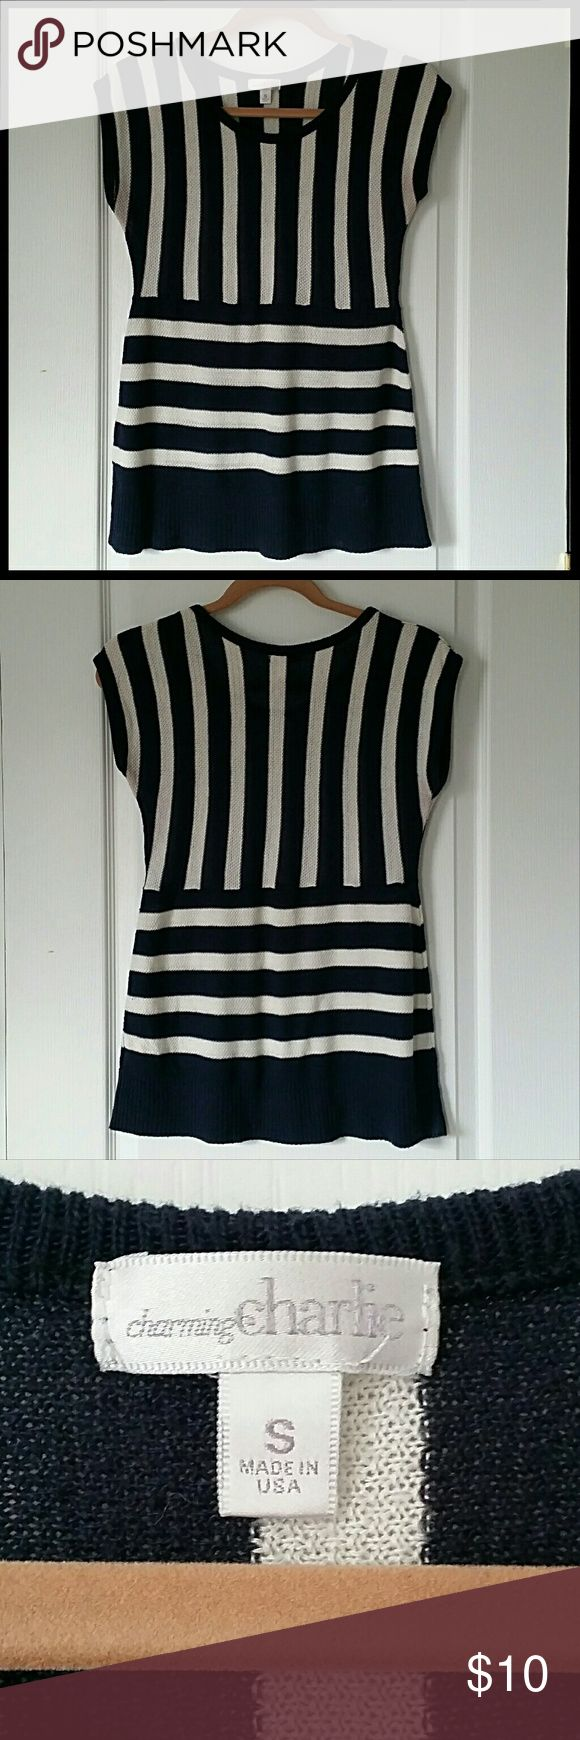 Charming Charlie Navy Striped Tunic Nautical short sleeve sweater tunic from Charming Charlie. Charming Charlie Tops Tunics